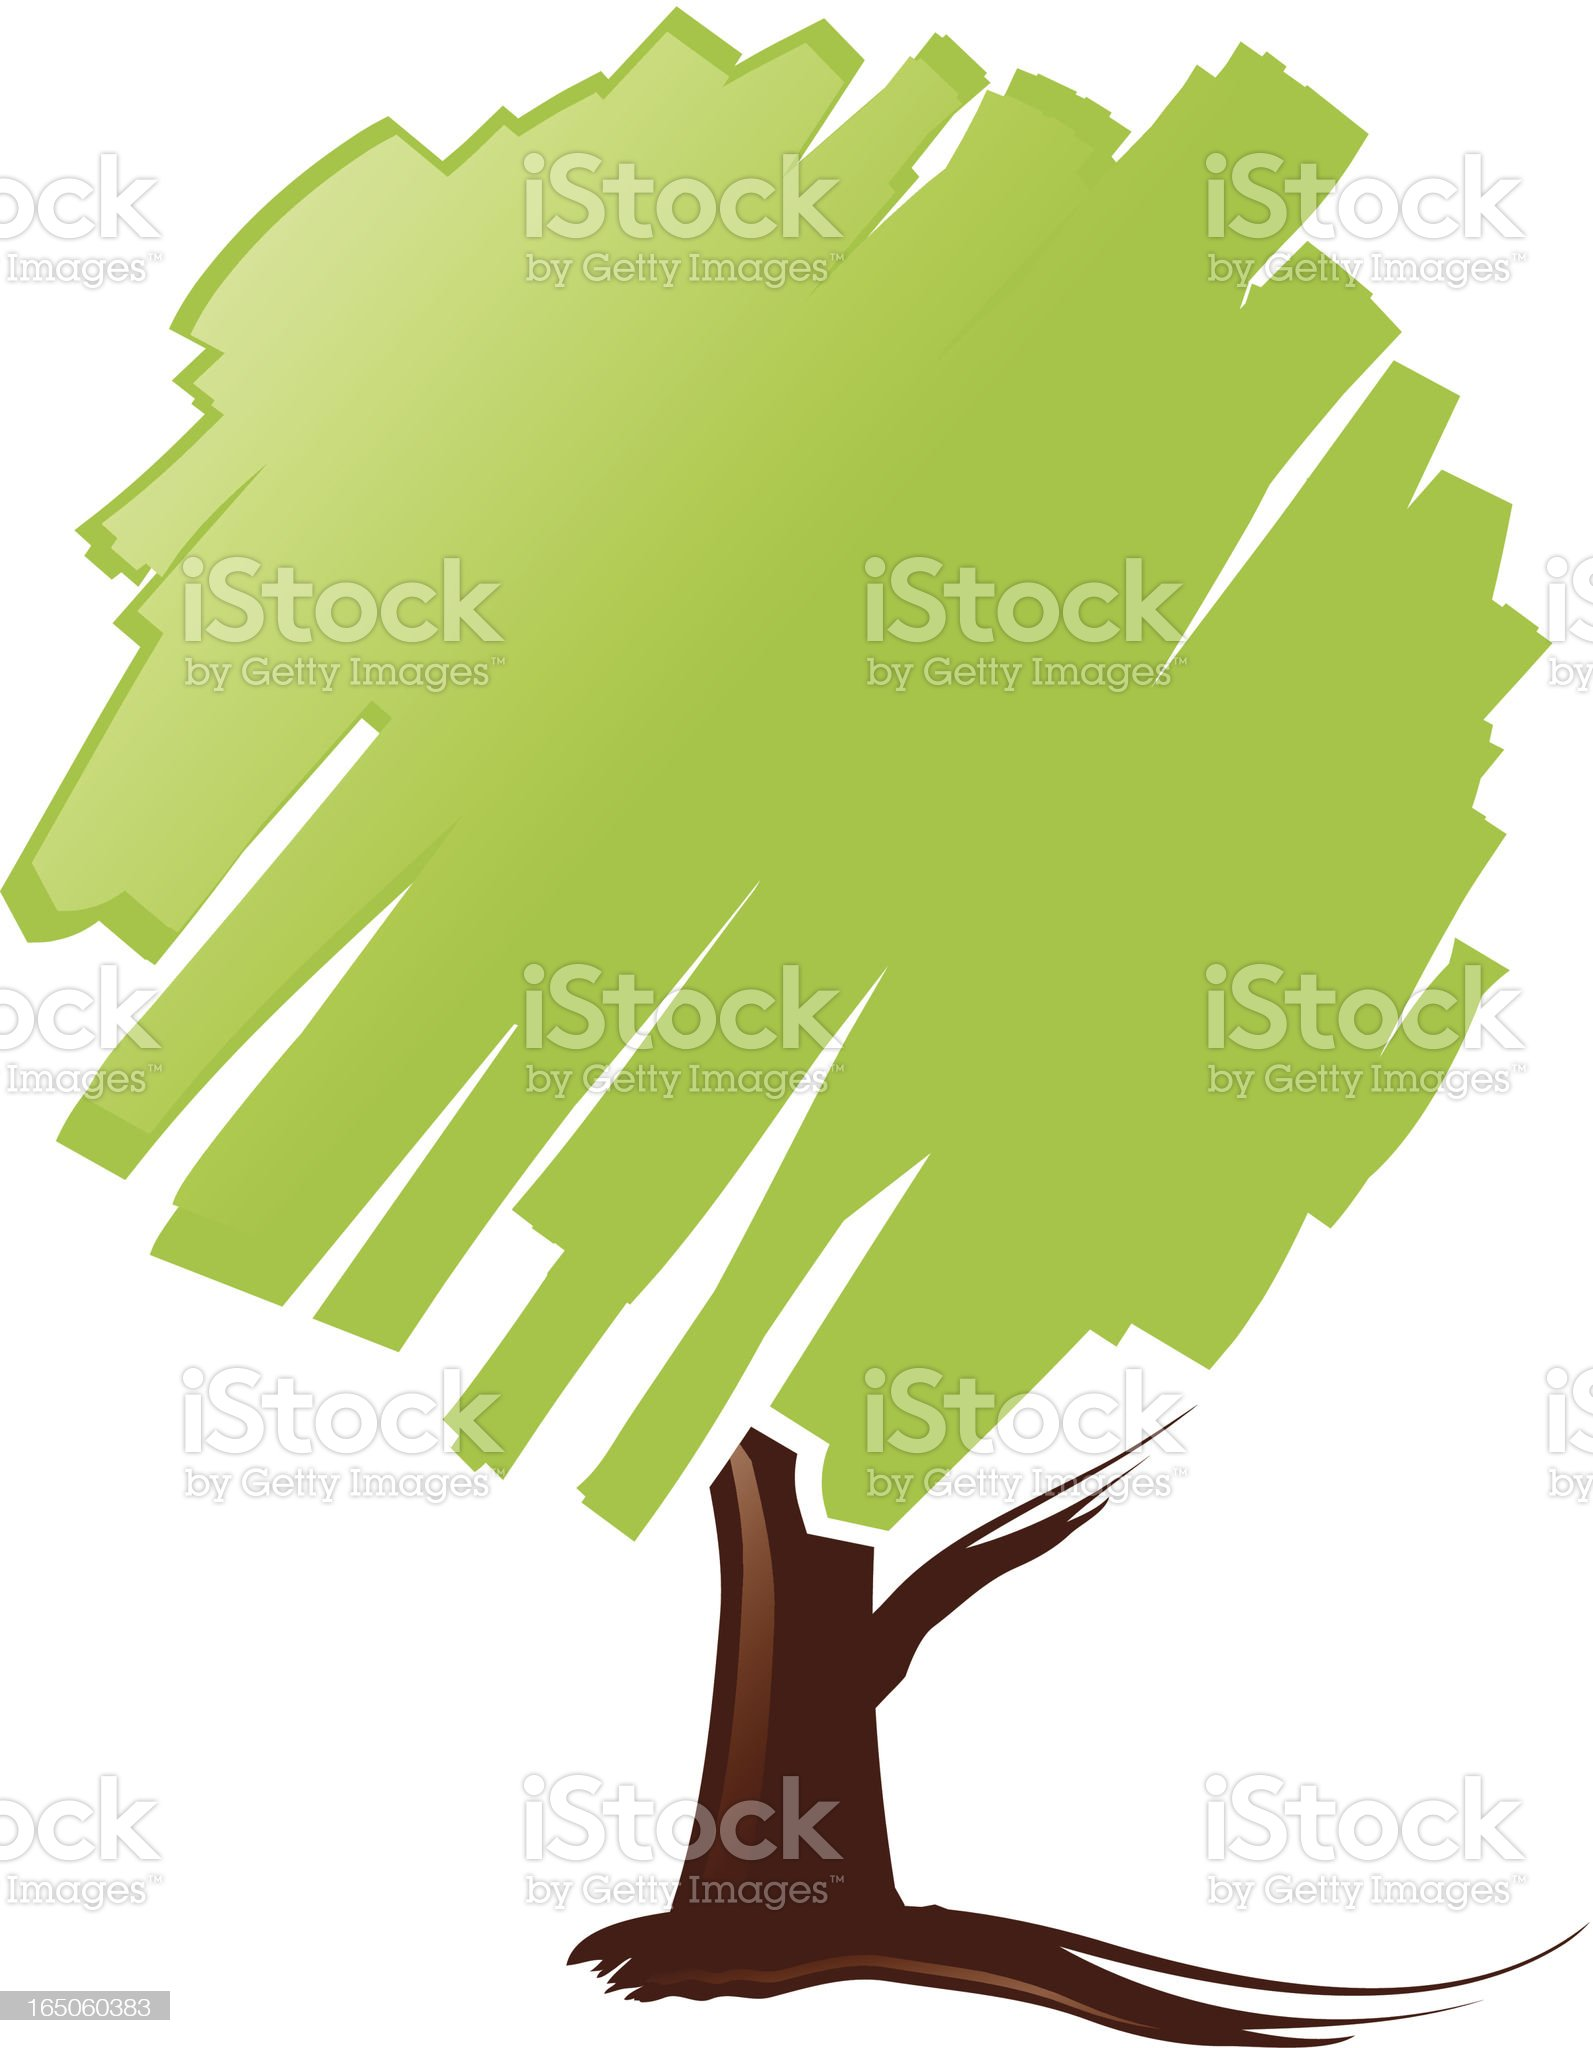 Brushed Tree royalty-free stock vector art